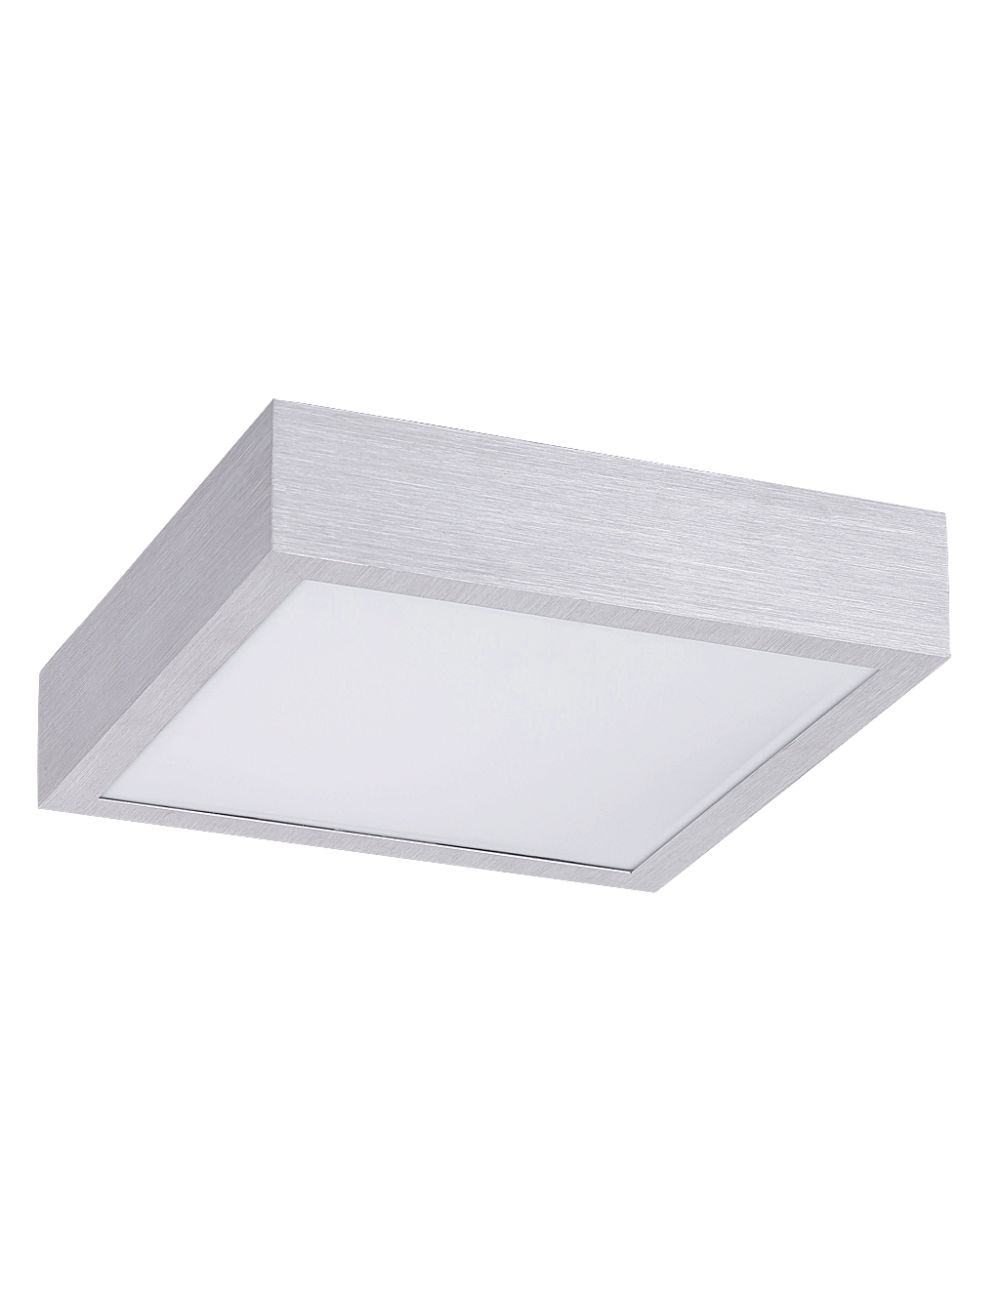 Plafon sufitowy LED Conors 28cm